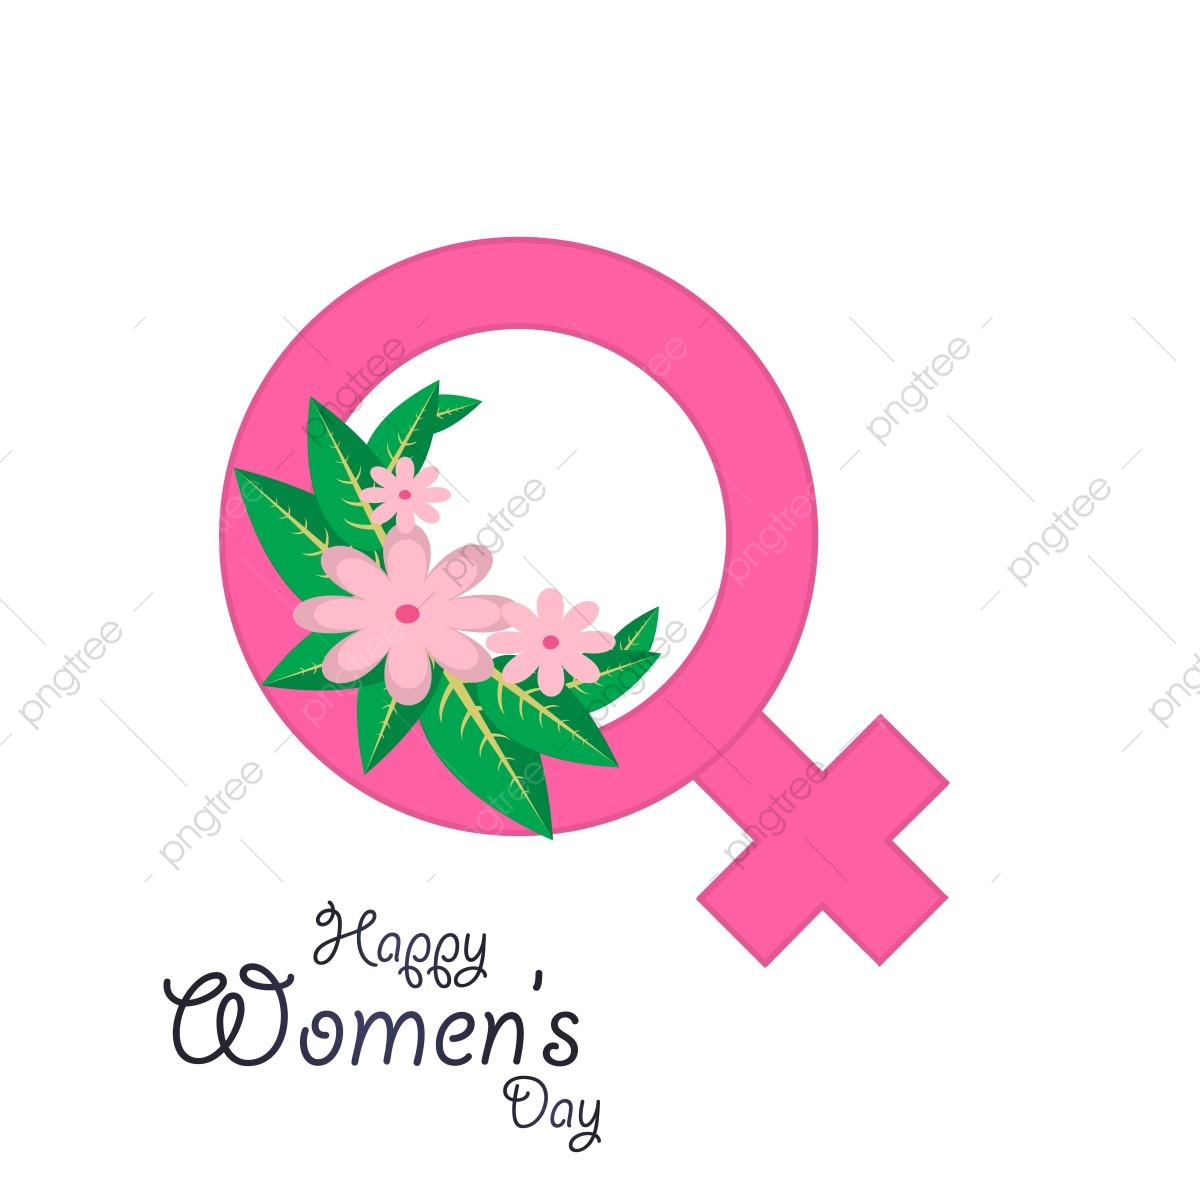 Feliz Dia De La Mujer Tarjeta Con Fondo Blanco Dia Womens International Png Y Vector Para Descargar Gratis Pngtree It's high quality and easy to use. https es pngtree com freepng happy women s day card with white background 3546027 html